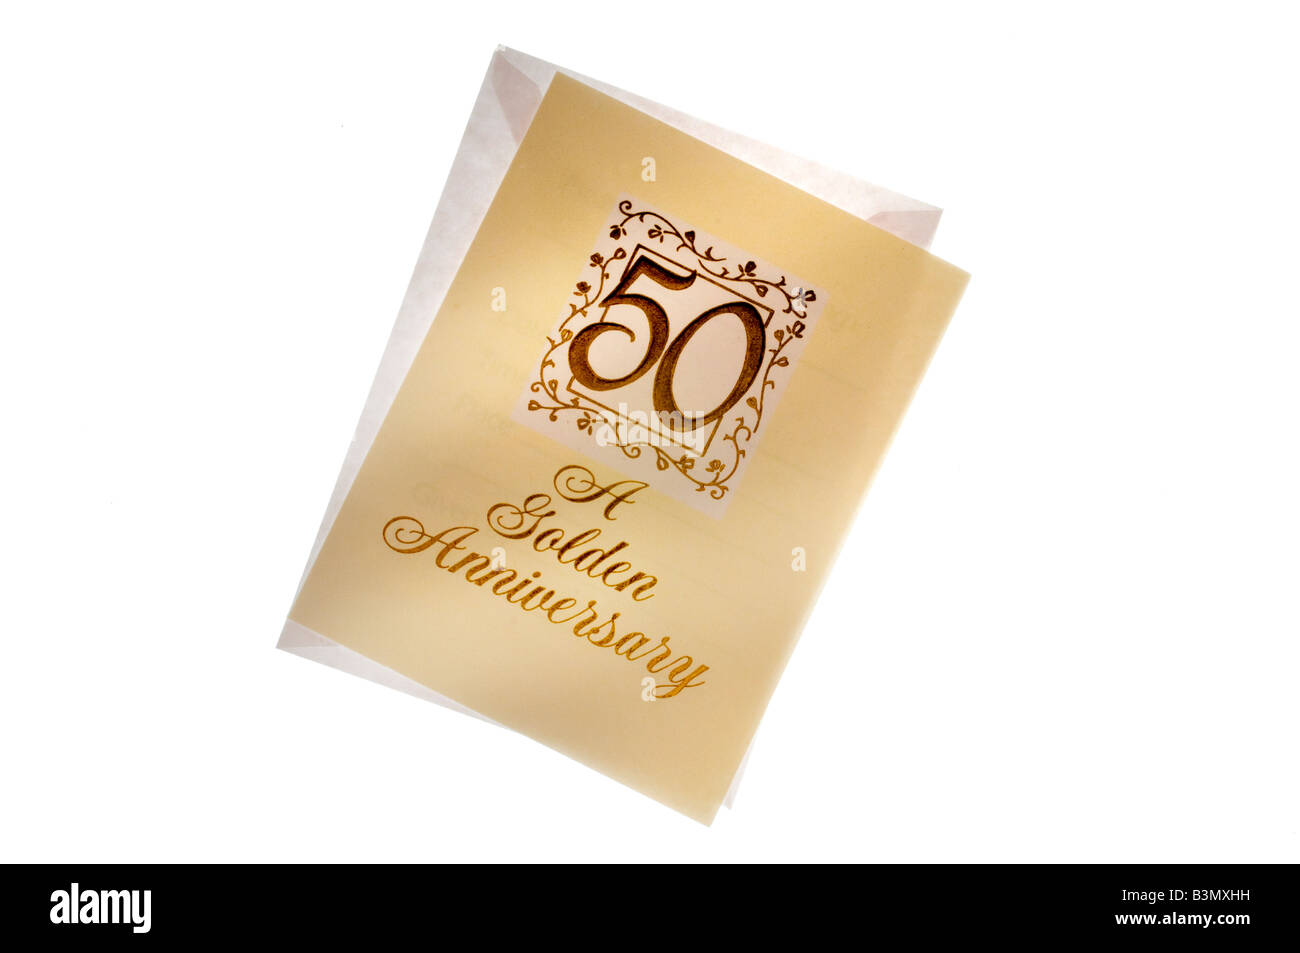 50th anniversary card and envelope on white - Stock Image